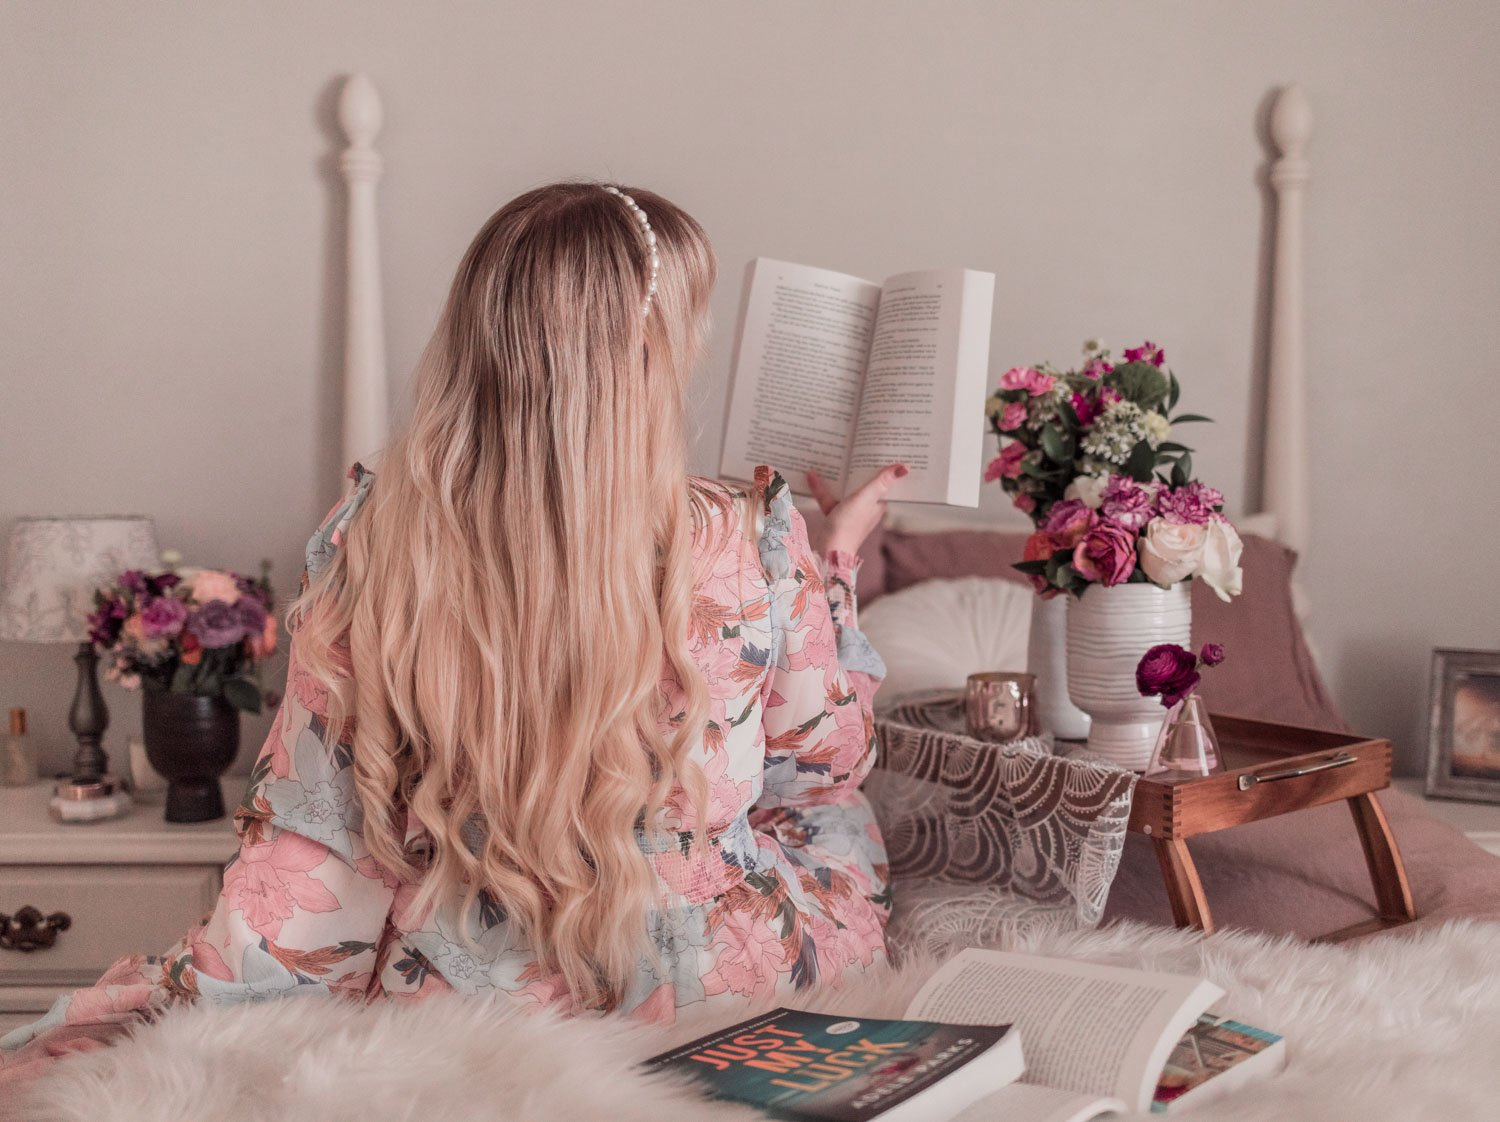 Feminine blogger Elizabeth Hugen of Lizzie in Lace shares her favorite spring books and 2021 new releases